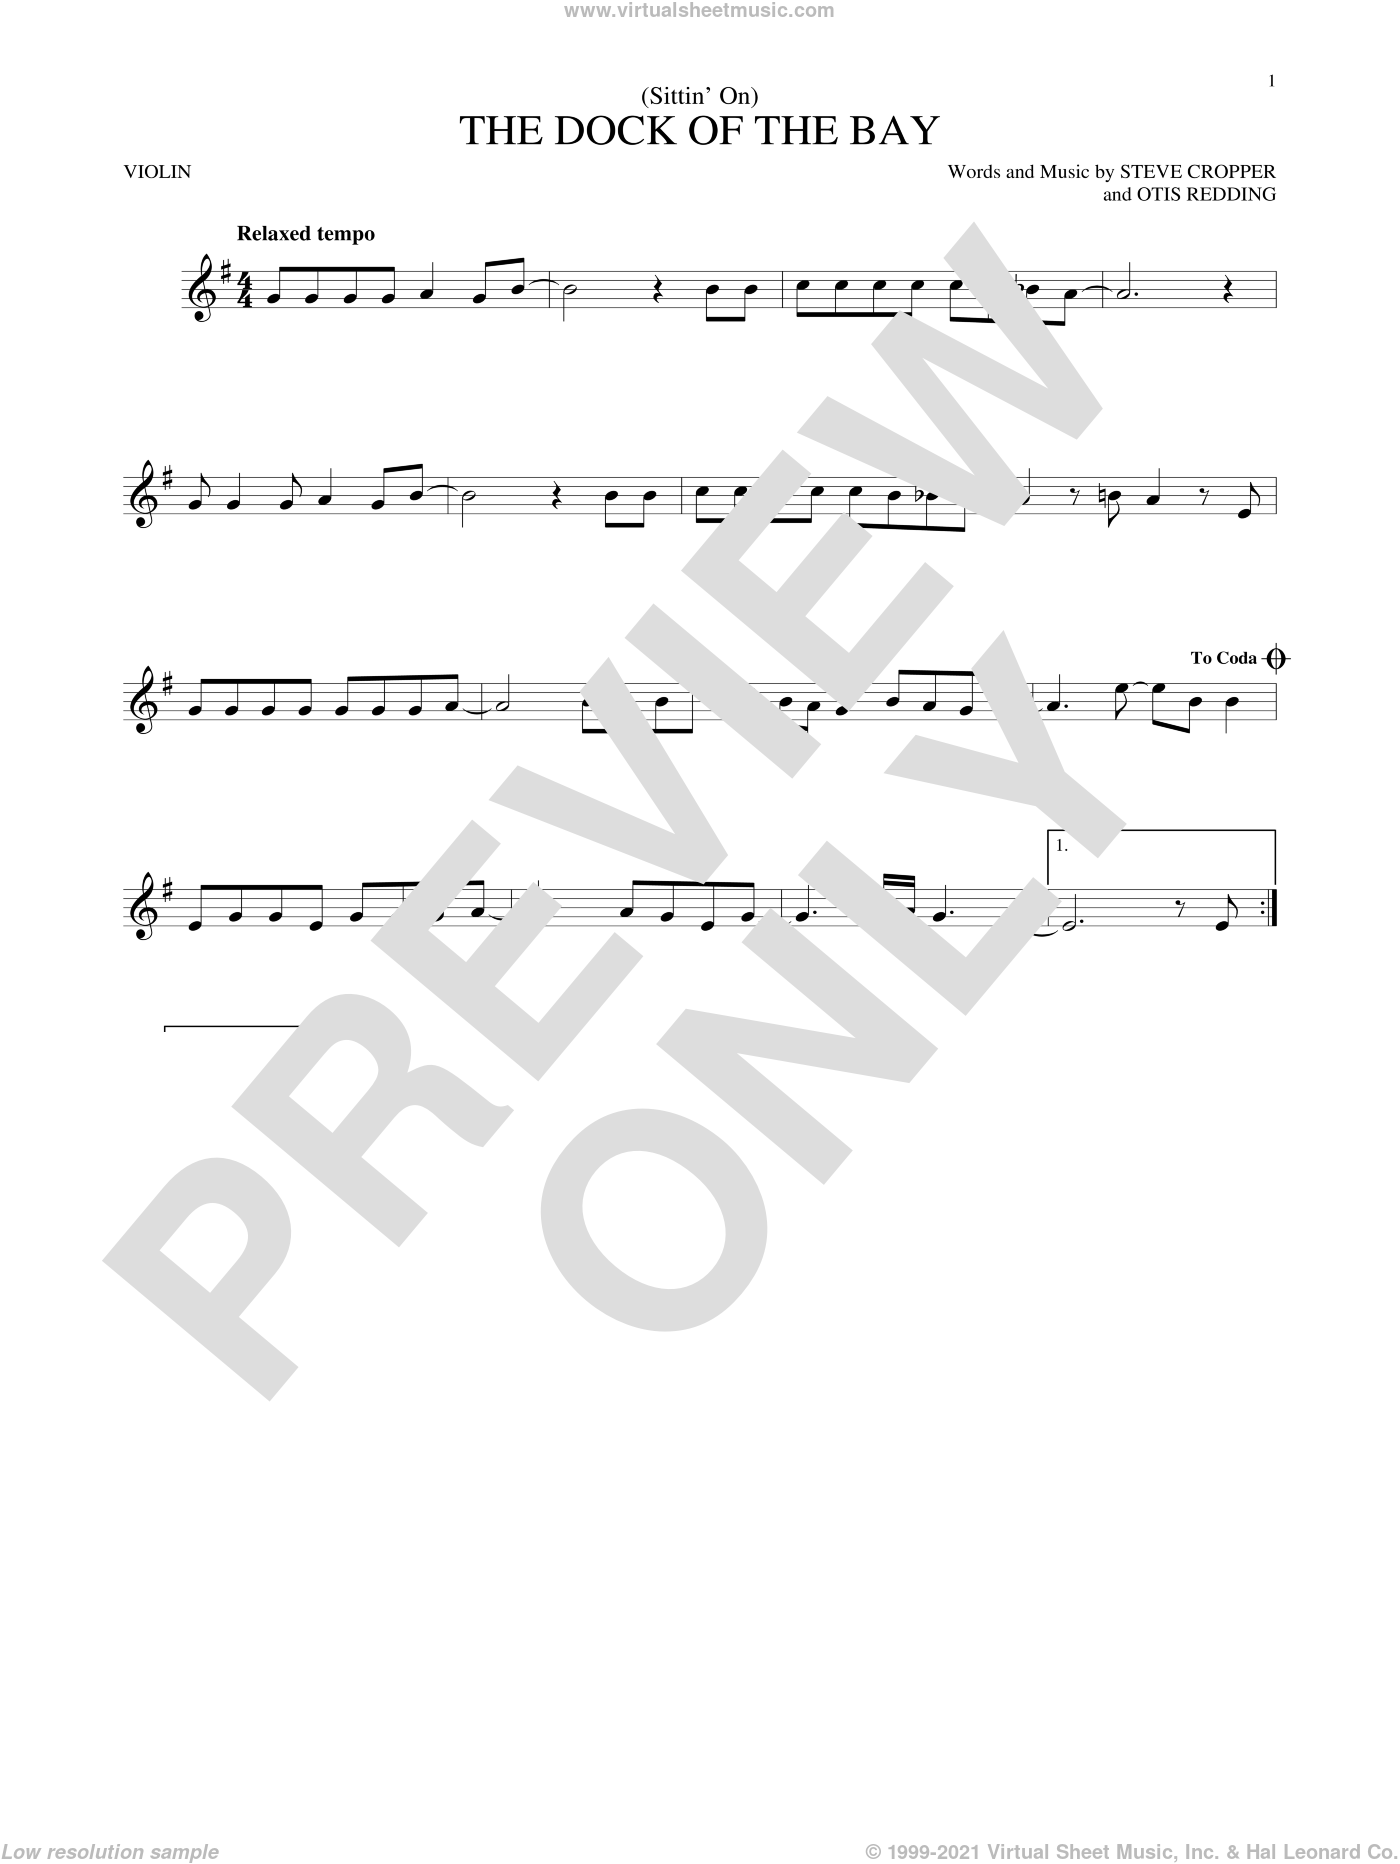 (Sittin' On) The Dock Of The Bay sheet music for violin solo by Otis Redding and Steve Cropper, intermediate skill level